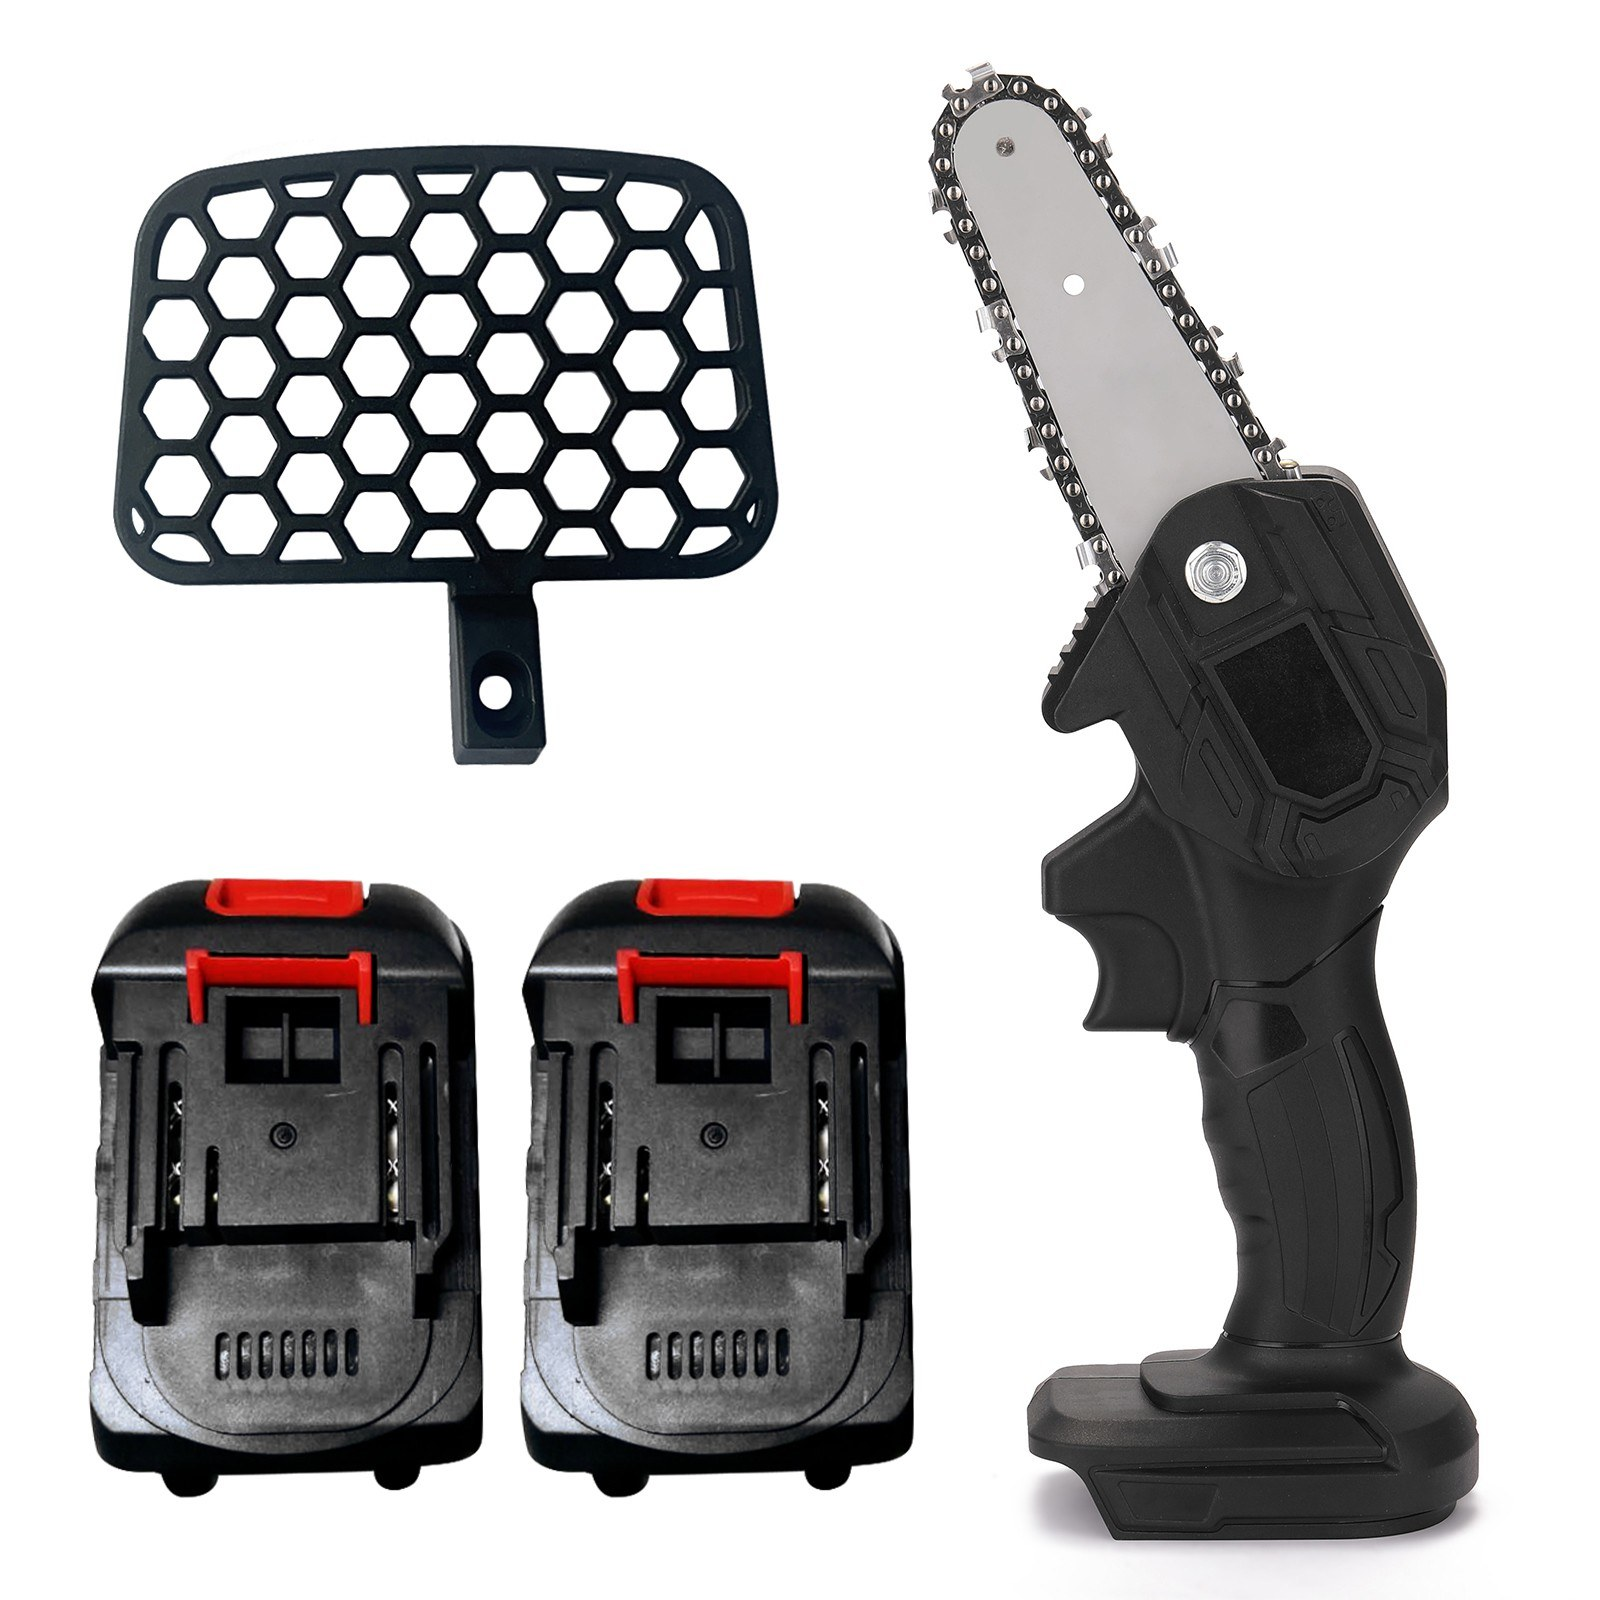 Tomtop - [EU Warehouse] 21V Lithium Battery(Two) Portable Electric Pruning Saw Rechargeable, $39.99 (Inclusive of VAT)